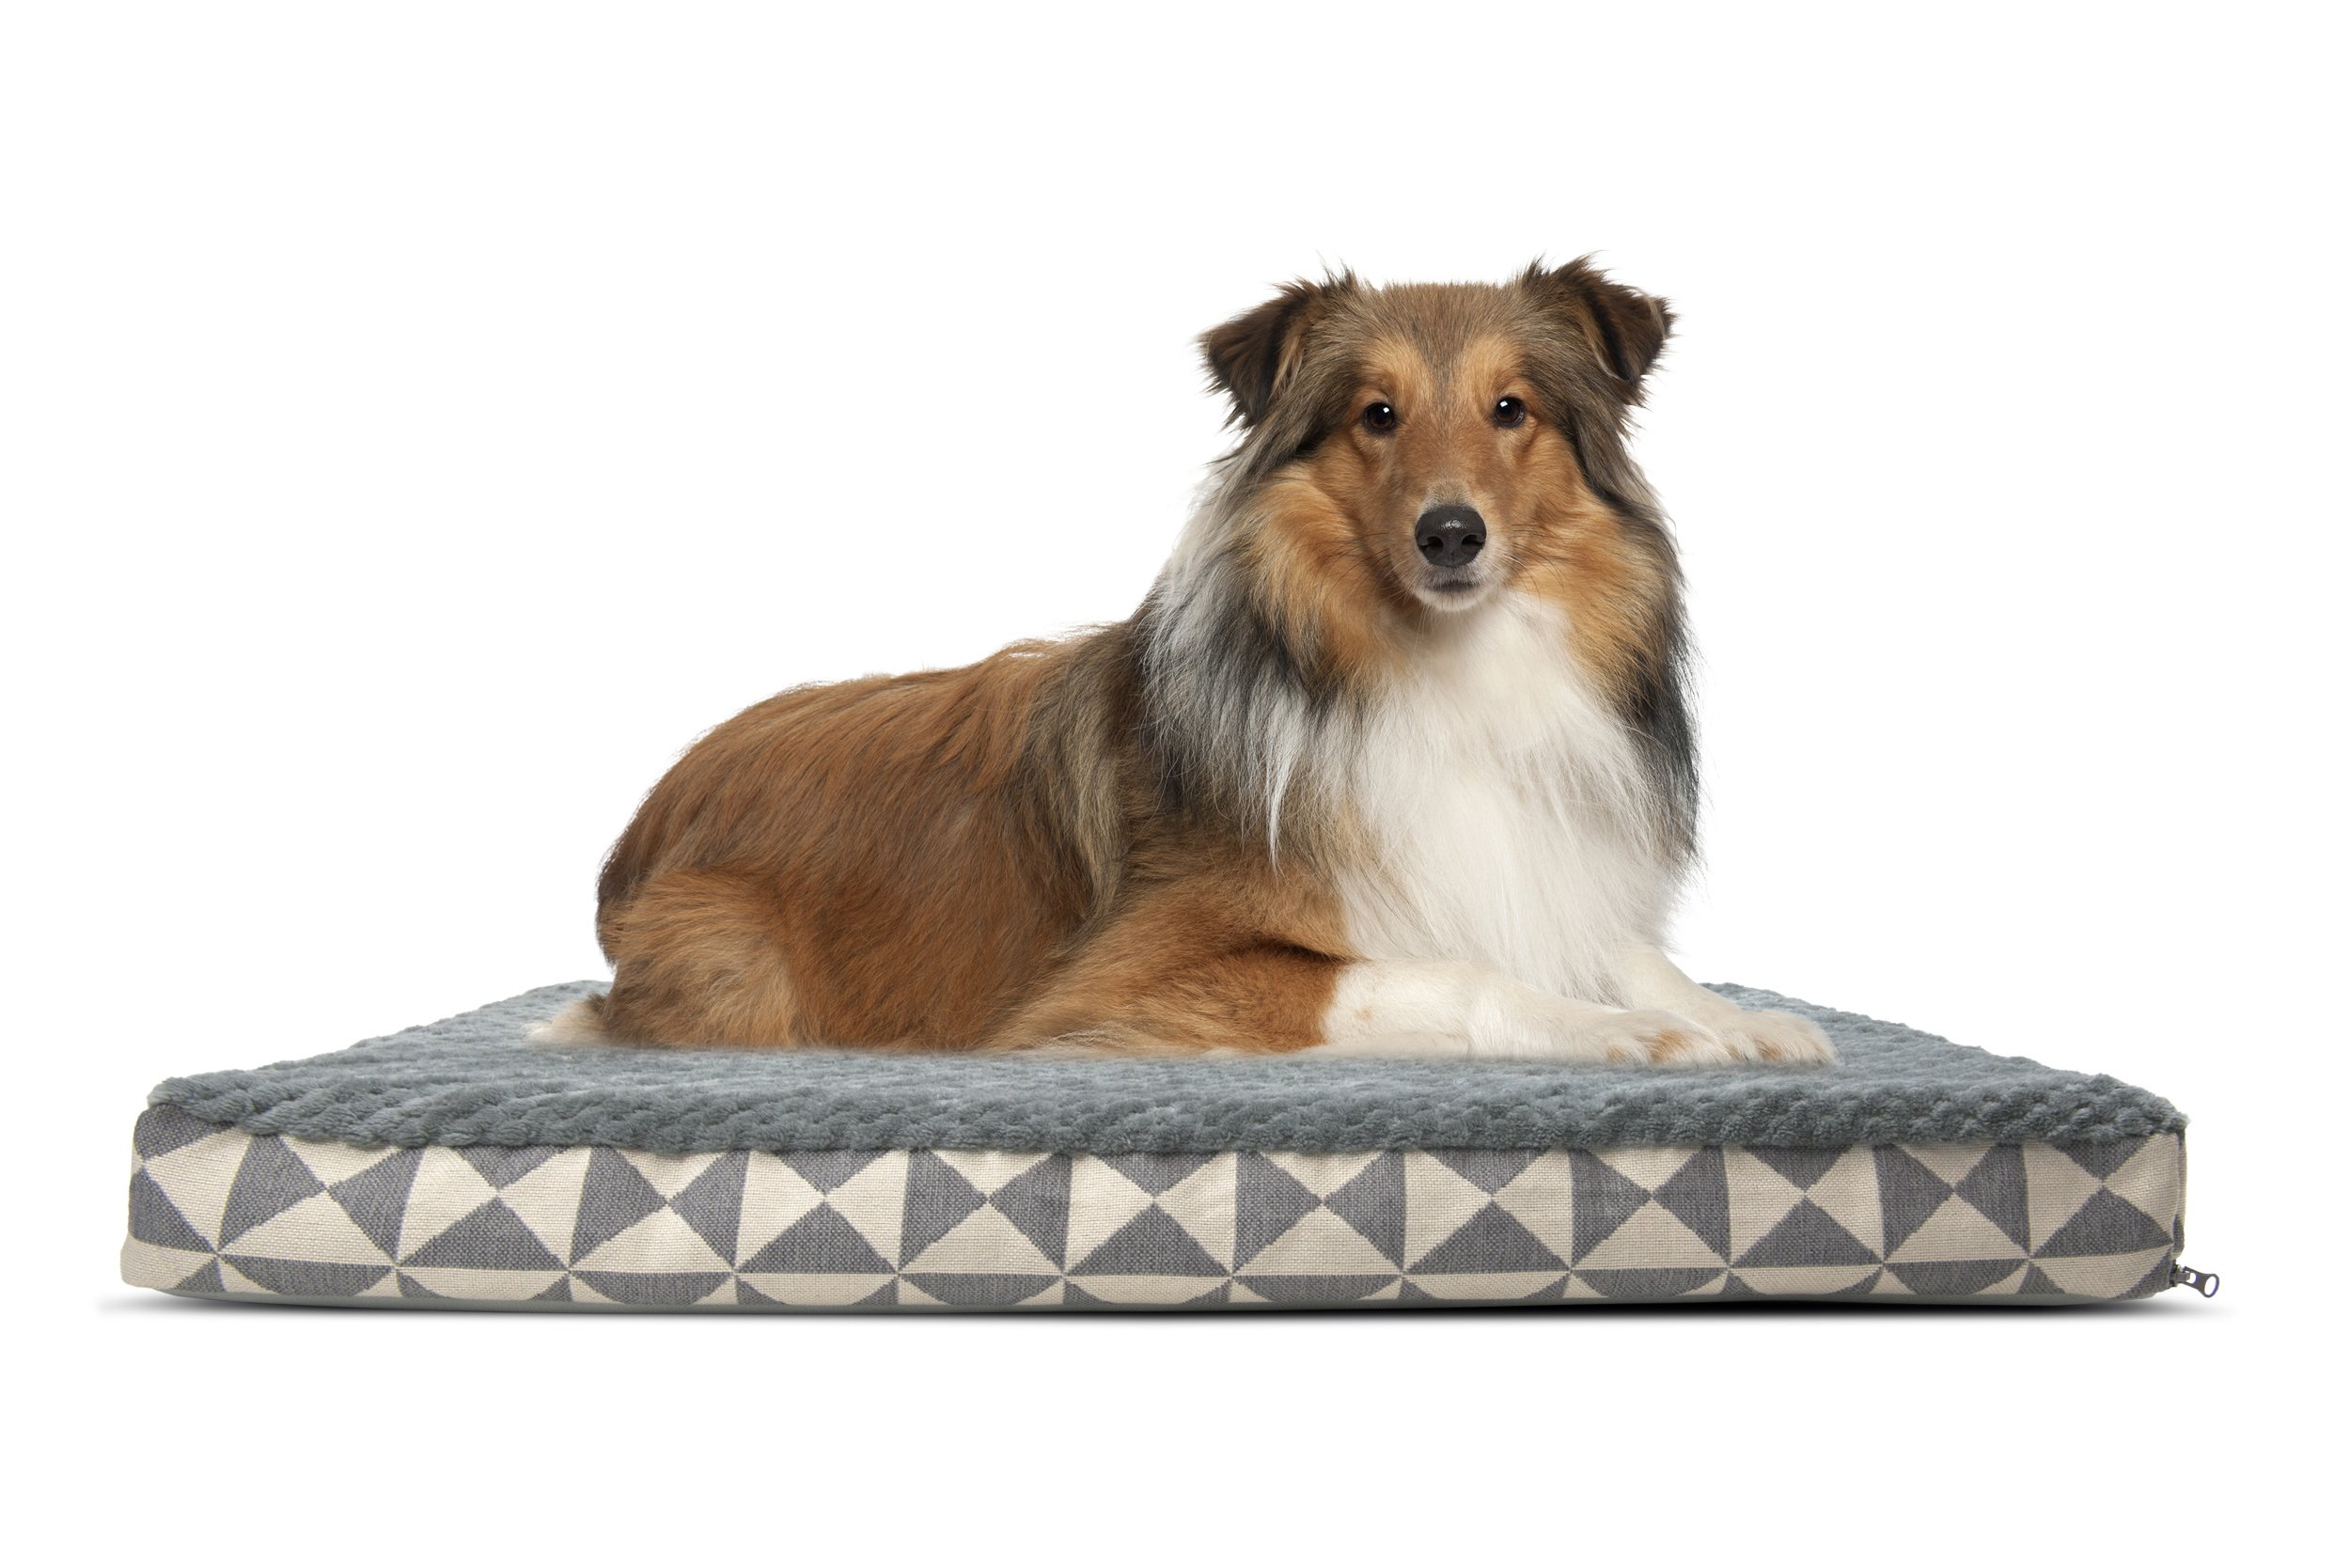 Furhaven Pet Dog Bed | Deluxe Orthopedic Plush Kilim Mattress Pet Bed for Dogs & Cats, Pyramid Gray, Large